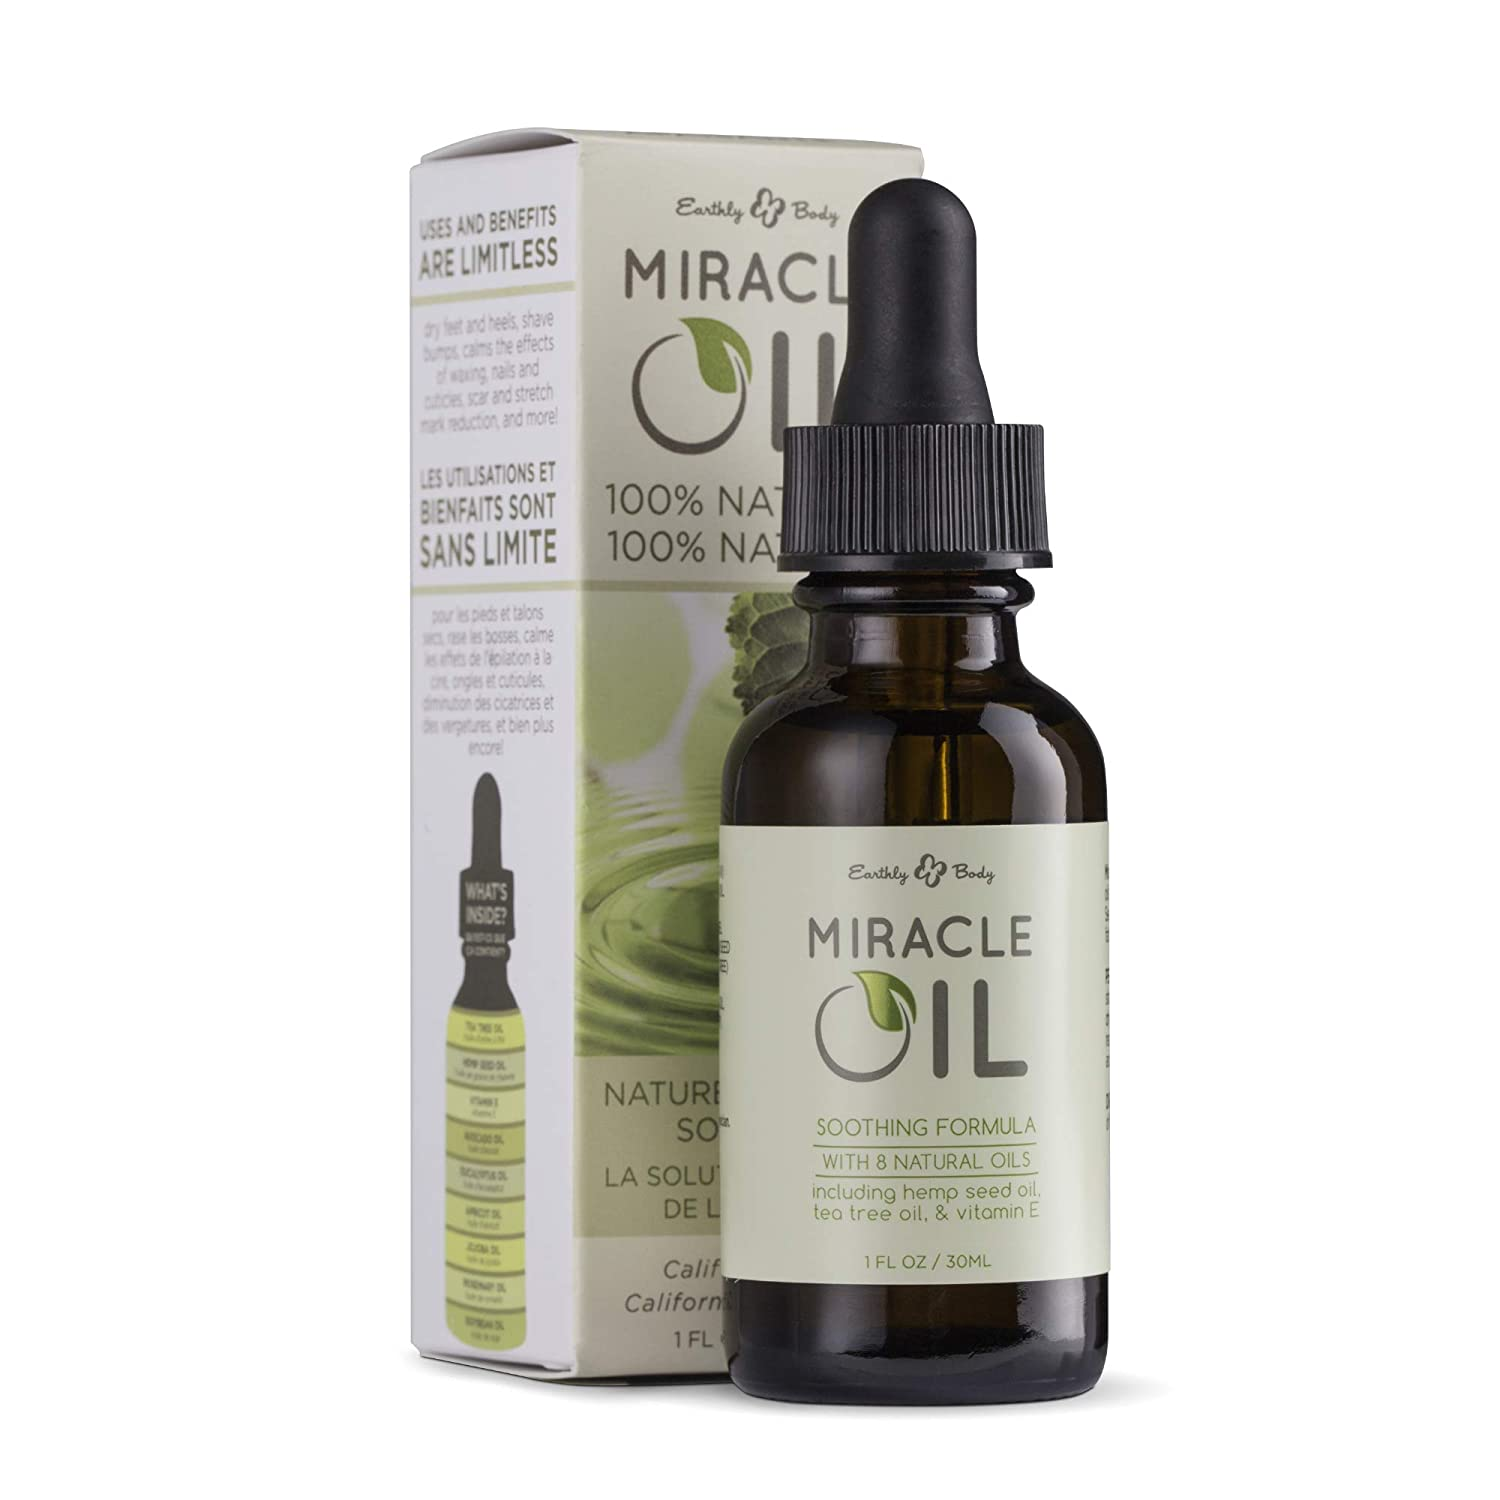 Earthly Body Miracle Oil, 1 fl. oz. - 100% Natural Tea Tree Oil, Hemp Seed Oil & Vitamin E - Moisturizer, Calms Skin Irritations, Helps Smooth Wrinkles - Gluten Free, 100% Vegan